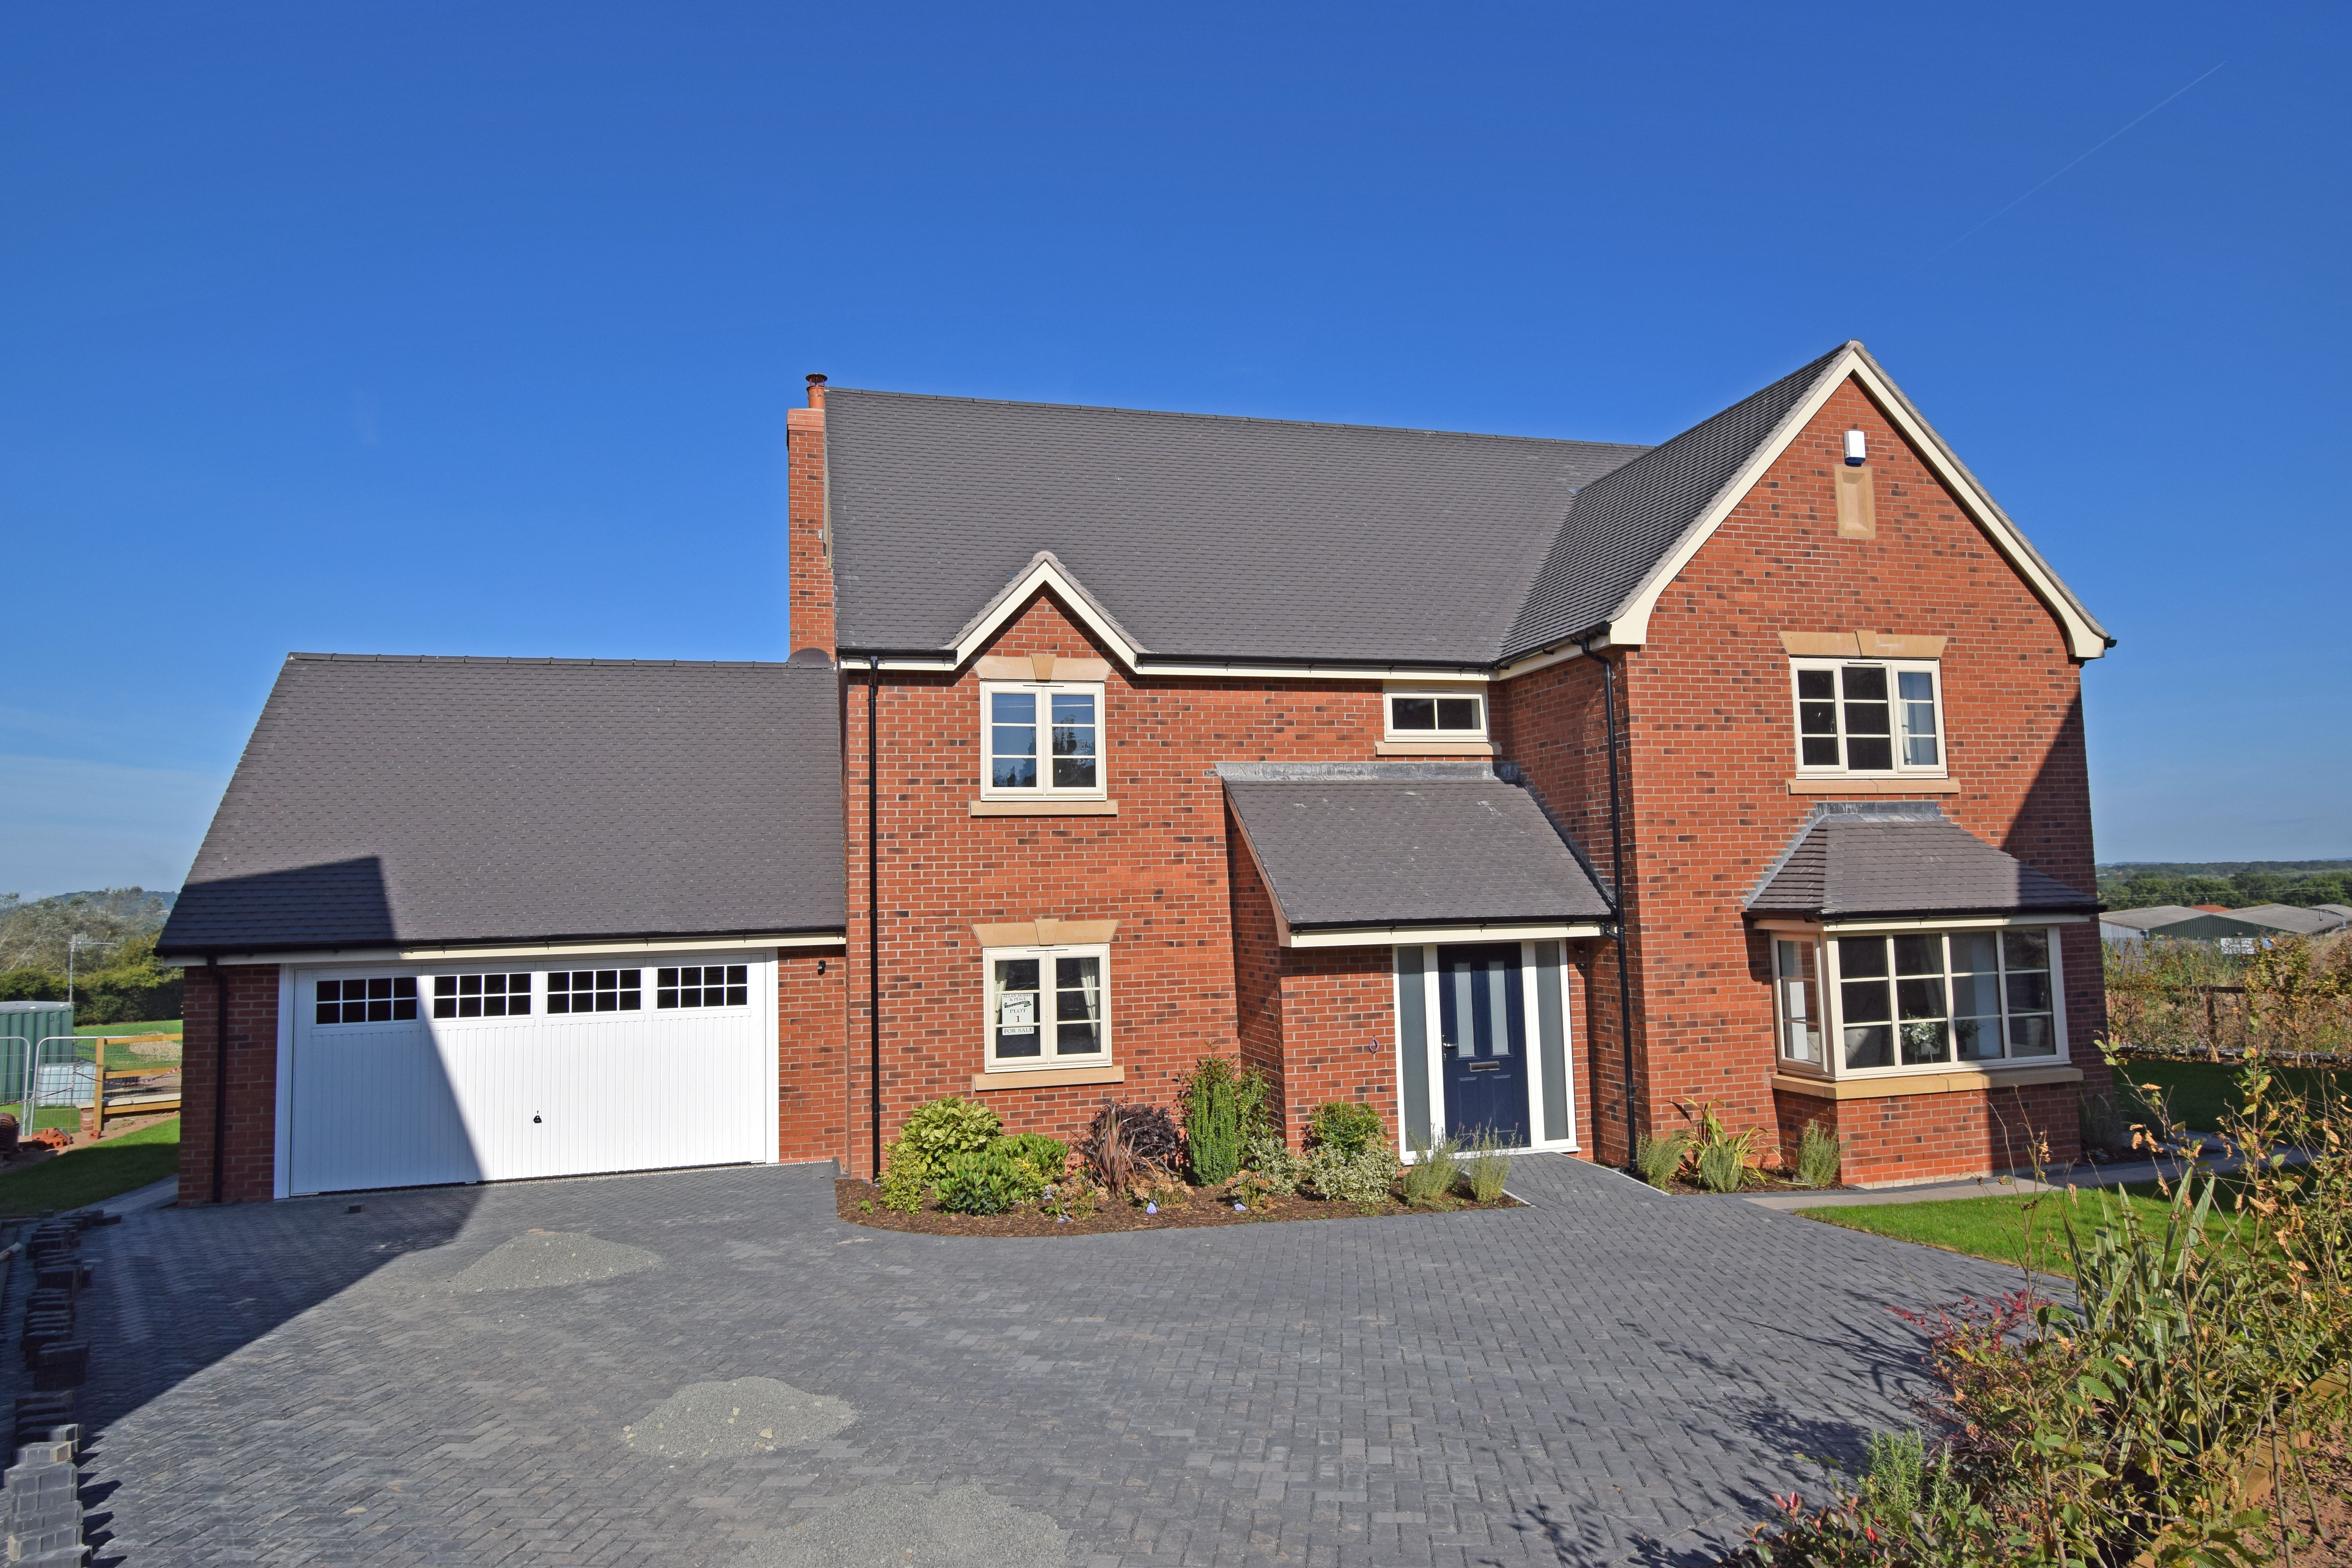 Plot 1 Peachley Court, front 2